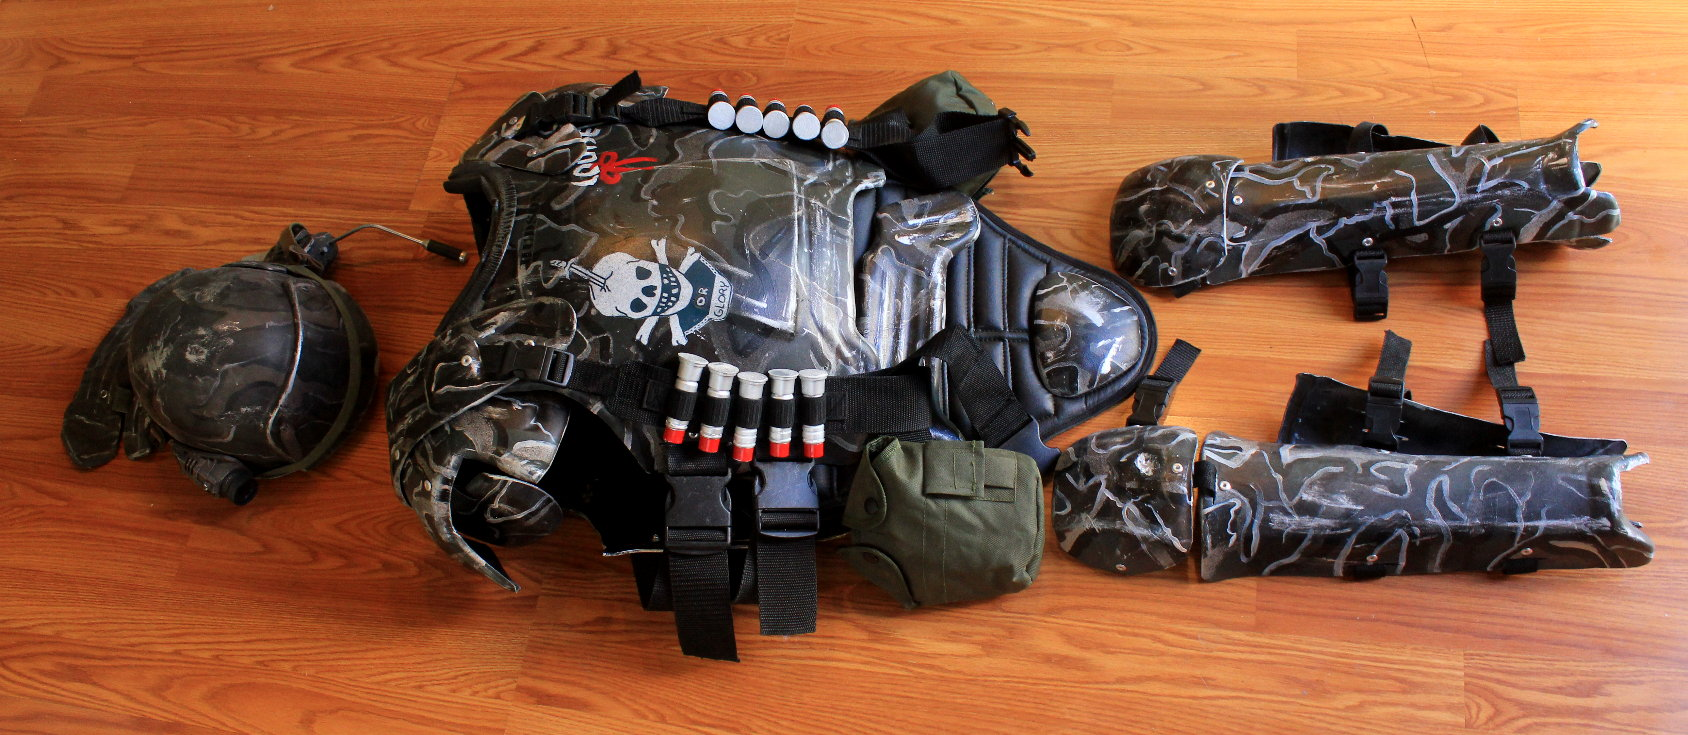 USCM Armor prop & marinearmor - Prop Replicas Custom Fabrication SPECIAL EFFECTS